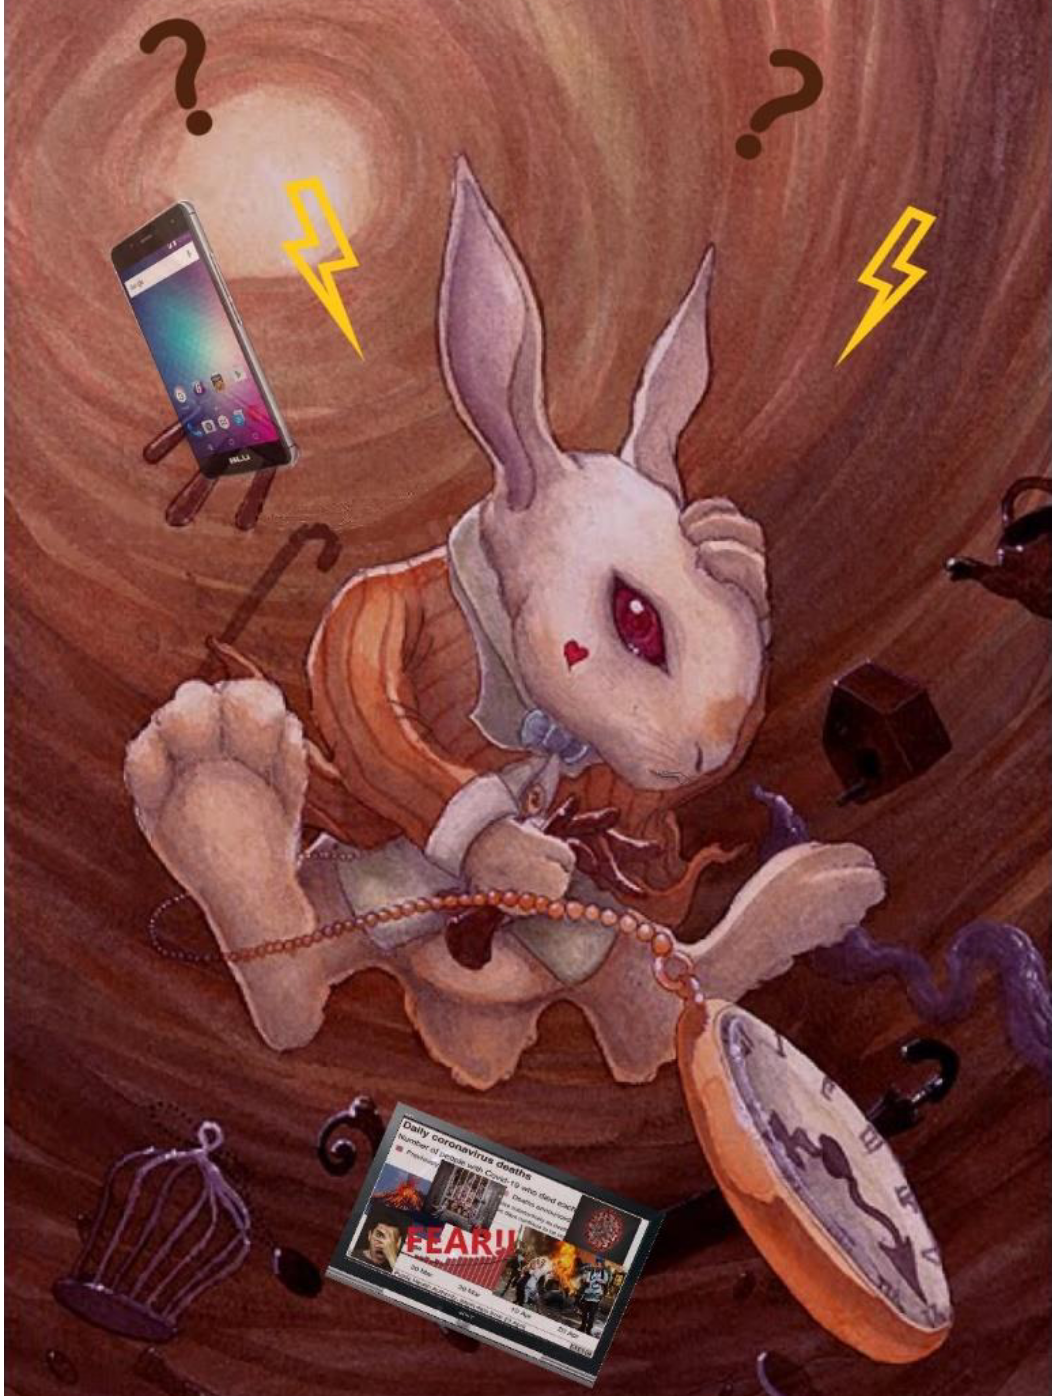 April 17, 2021 Healing Group Meeting – Surviving the Fall Down the Rabbit Hole